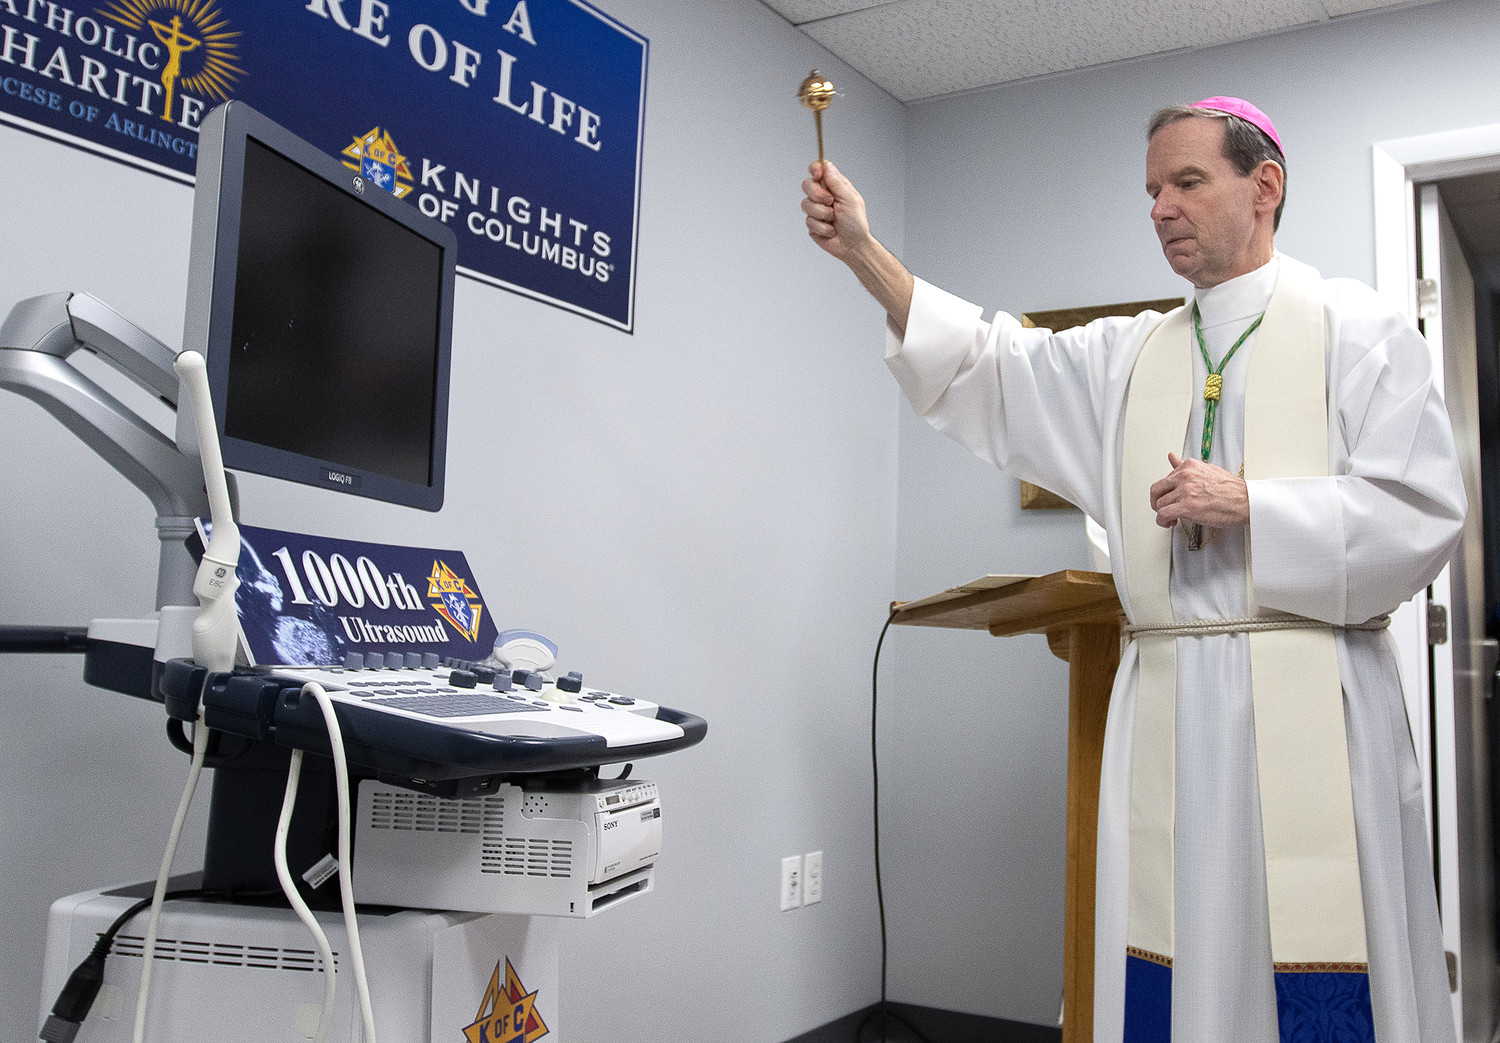 Bishop Michael F. Burbidge of Arlington, Va., blesses the new ultrasound machine for the Mother of Mercy Free Clinic in Manassas, Virginia